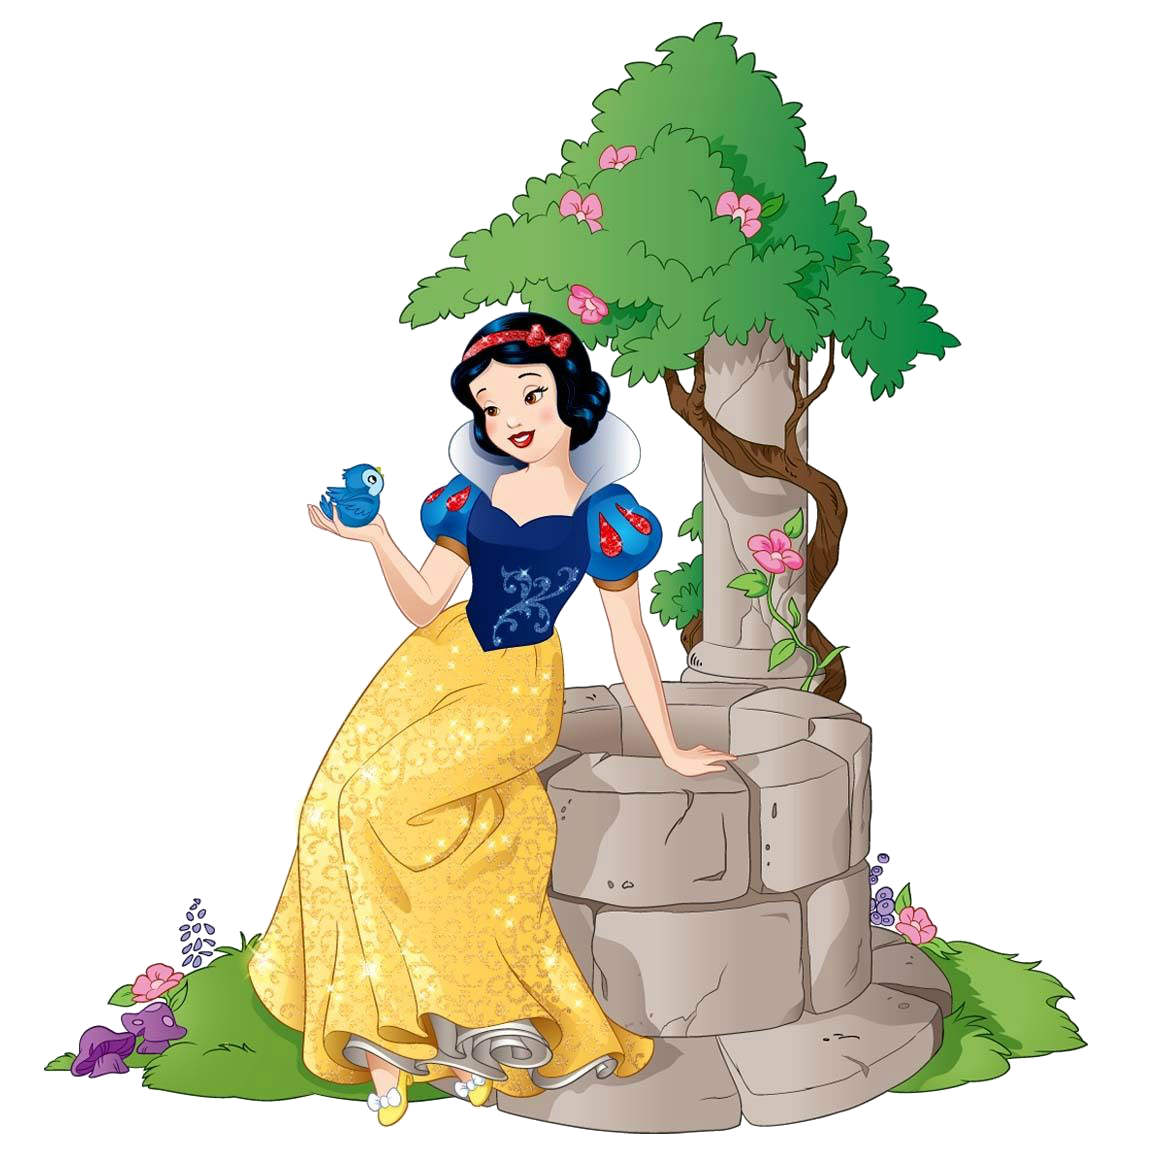 Snow White (character)/Gallery | Pinterest | Snow white, Snow white ... banner library